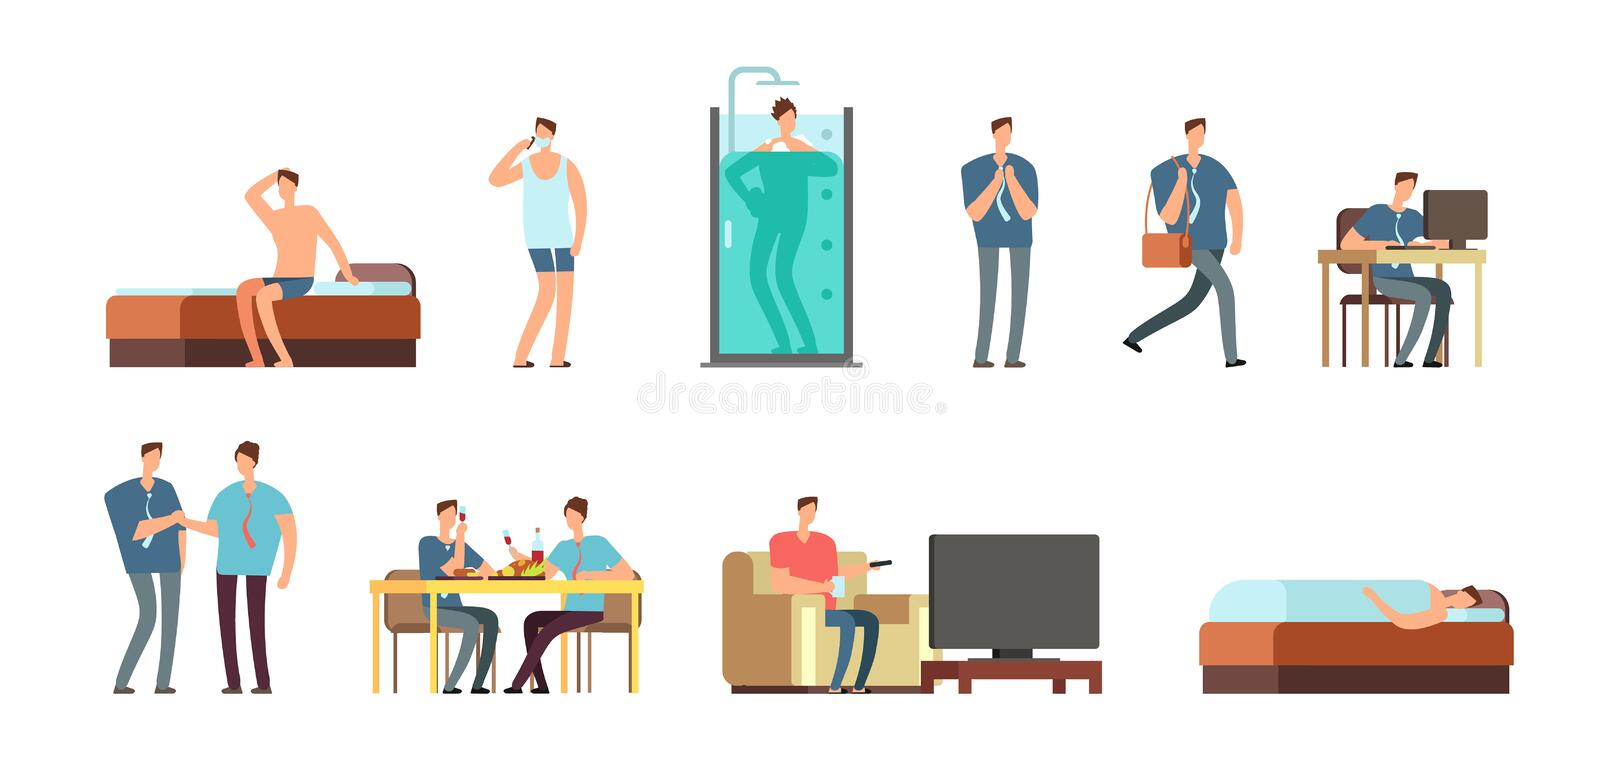 Man in everyday life. People daily routine vector cartoon businessman characters set. Work character everyday, man life and business illustration royalty free illustration